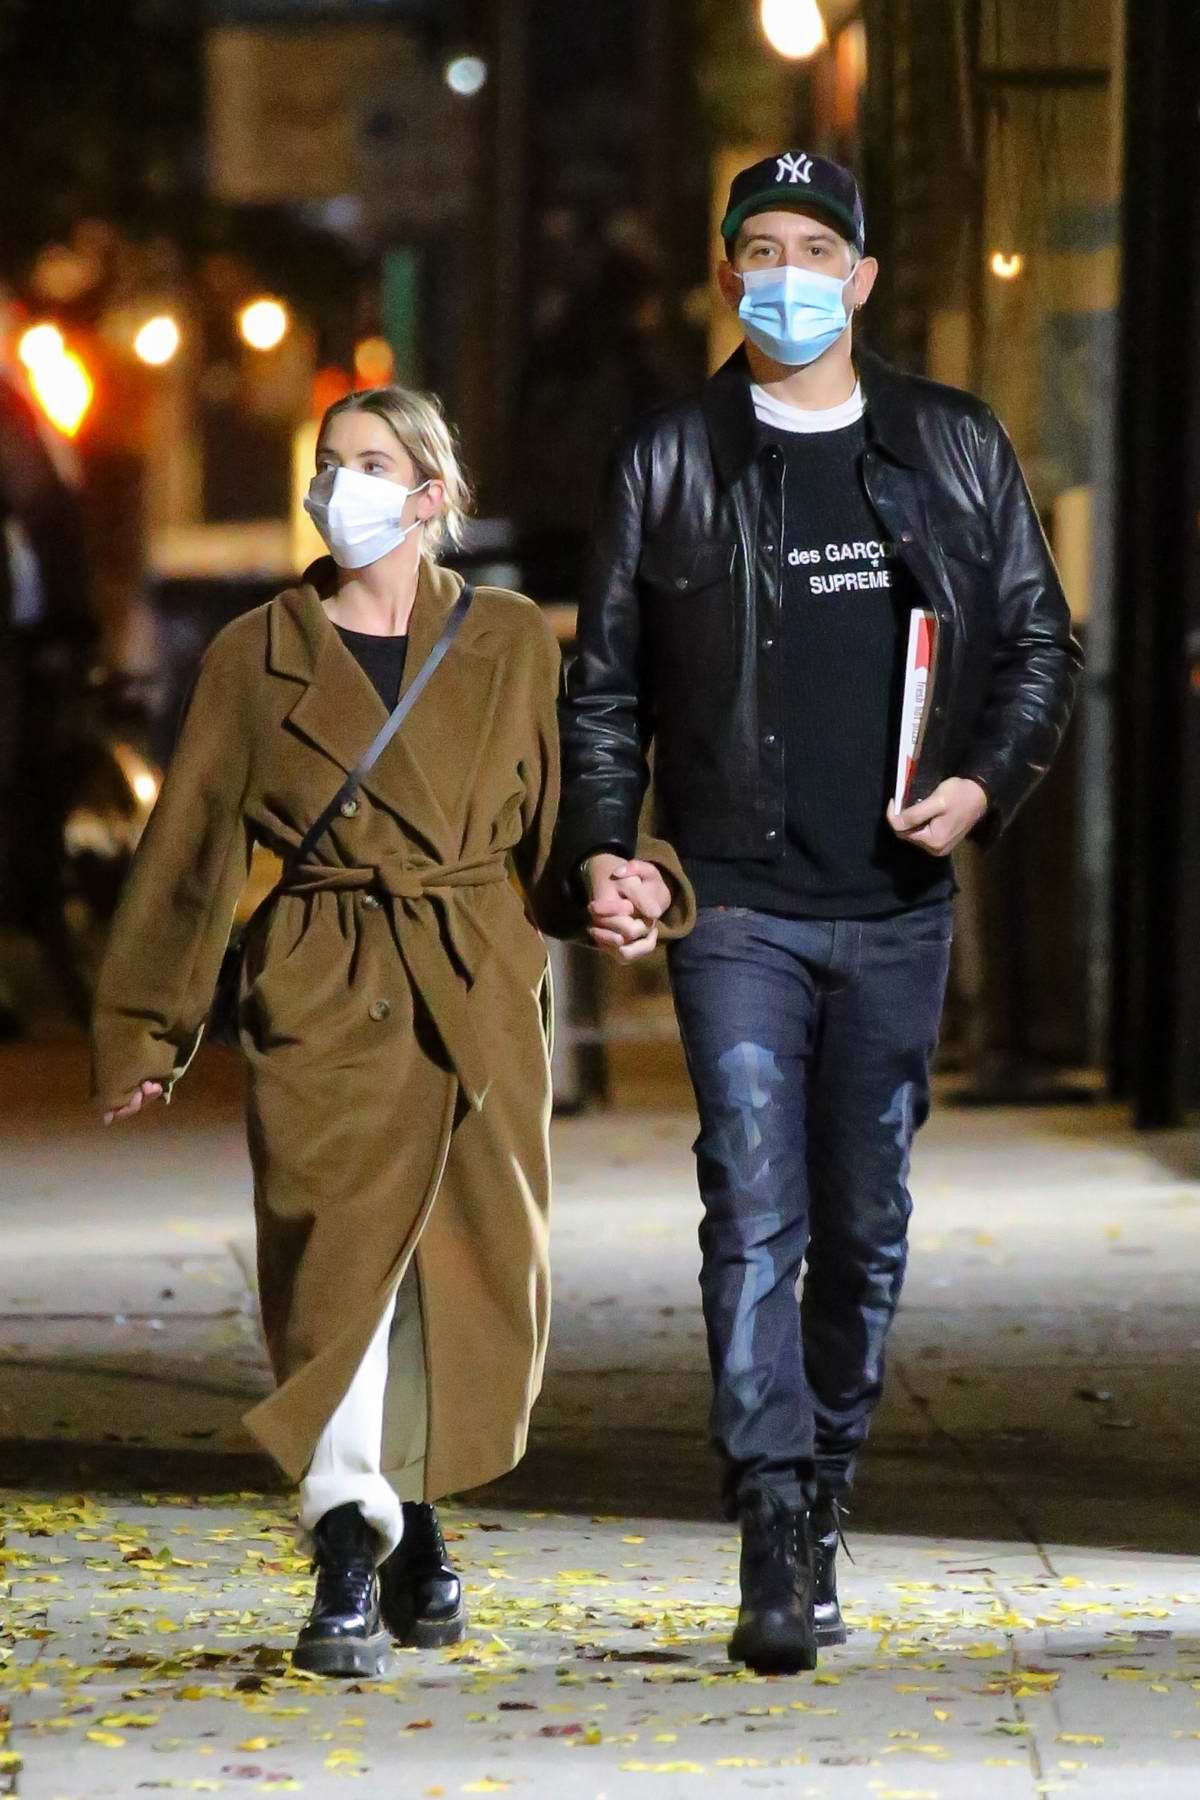 Ashley Benson and G-Eazy seen holding hands as they step out for an evening stroll in New York City